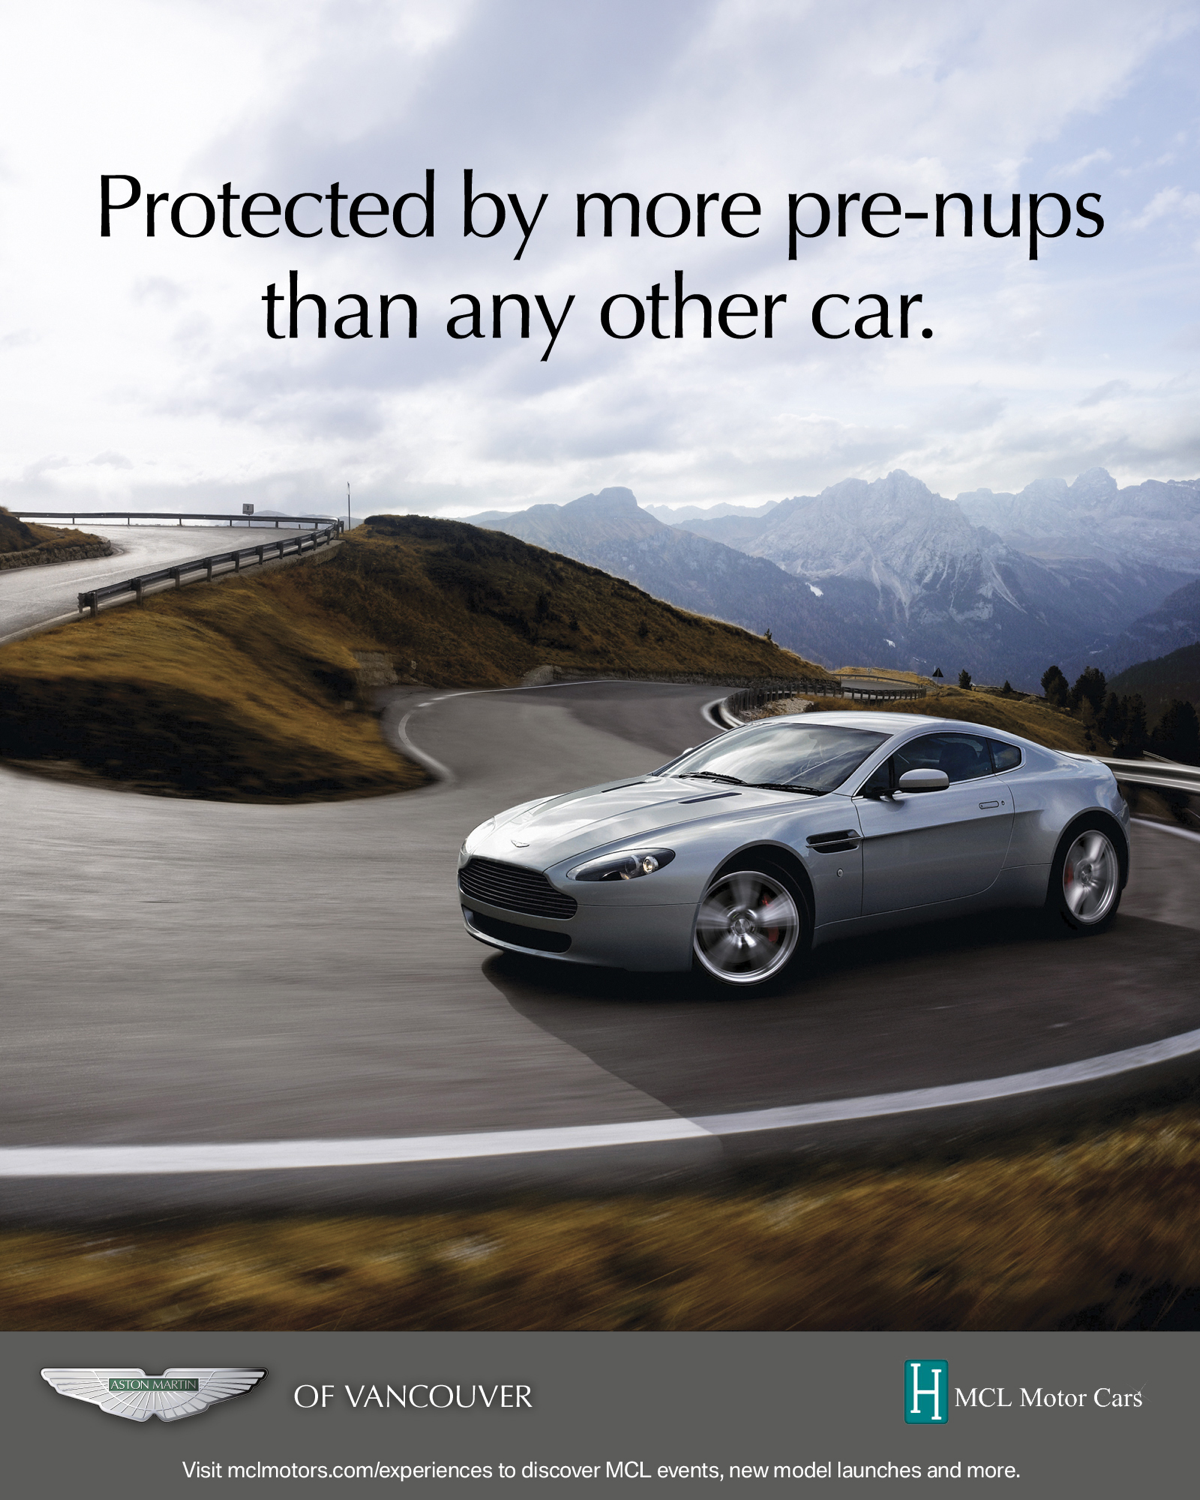 Aston Martin Used Cars Poster